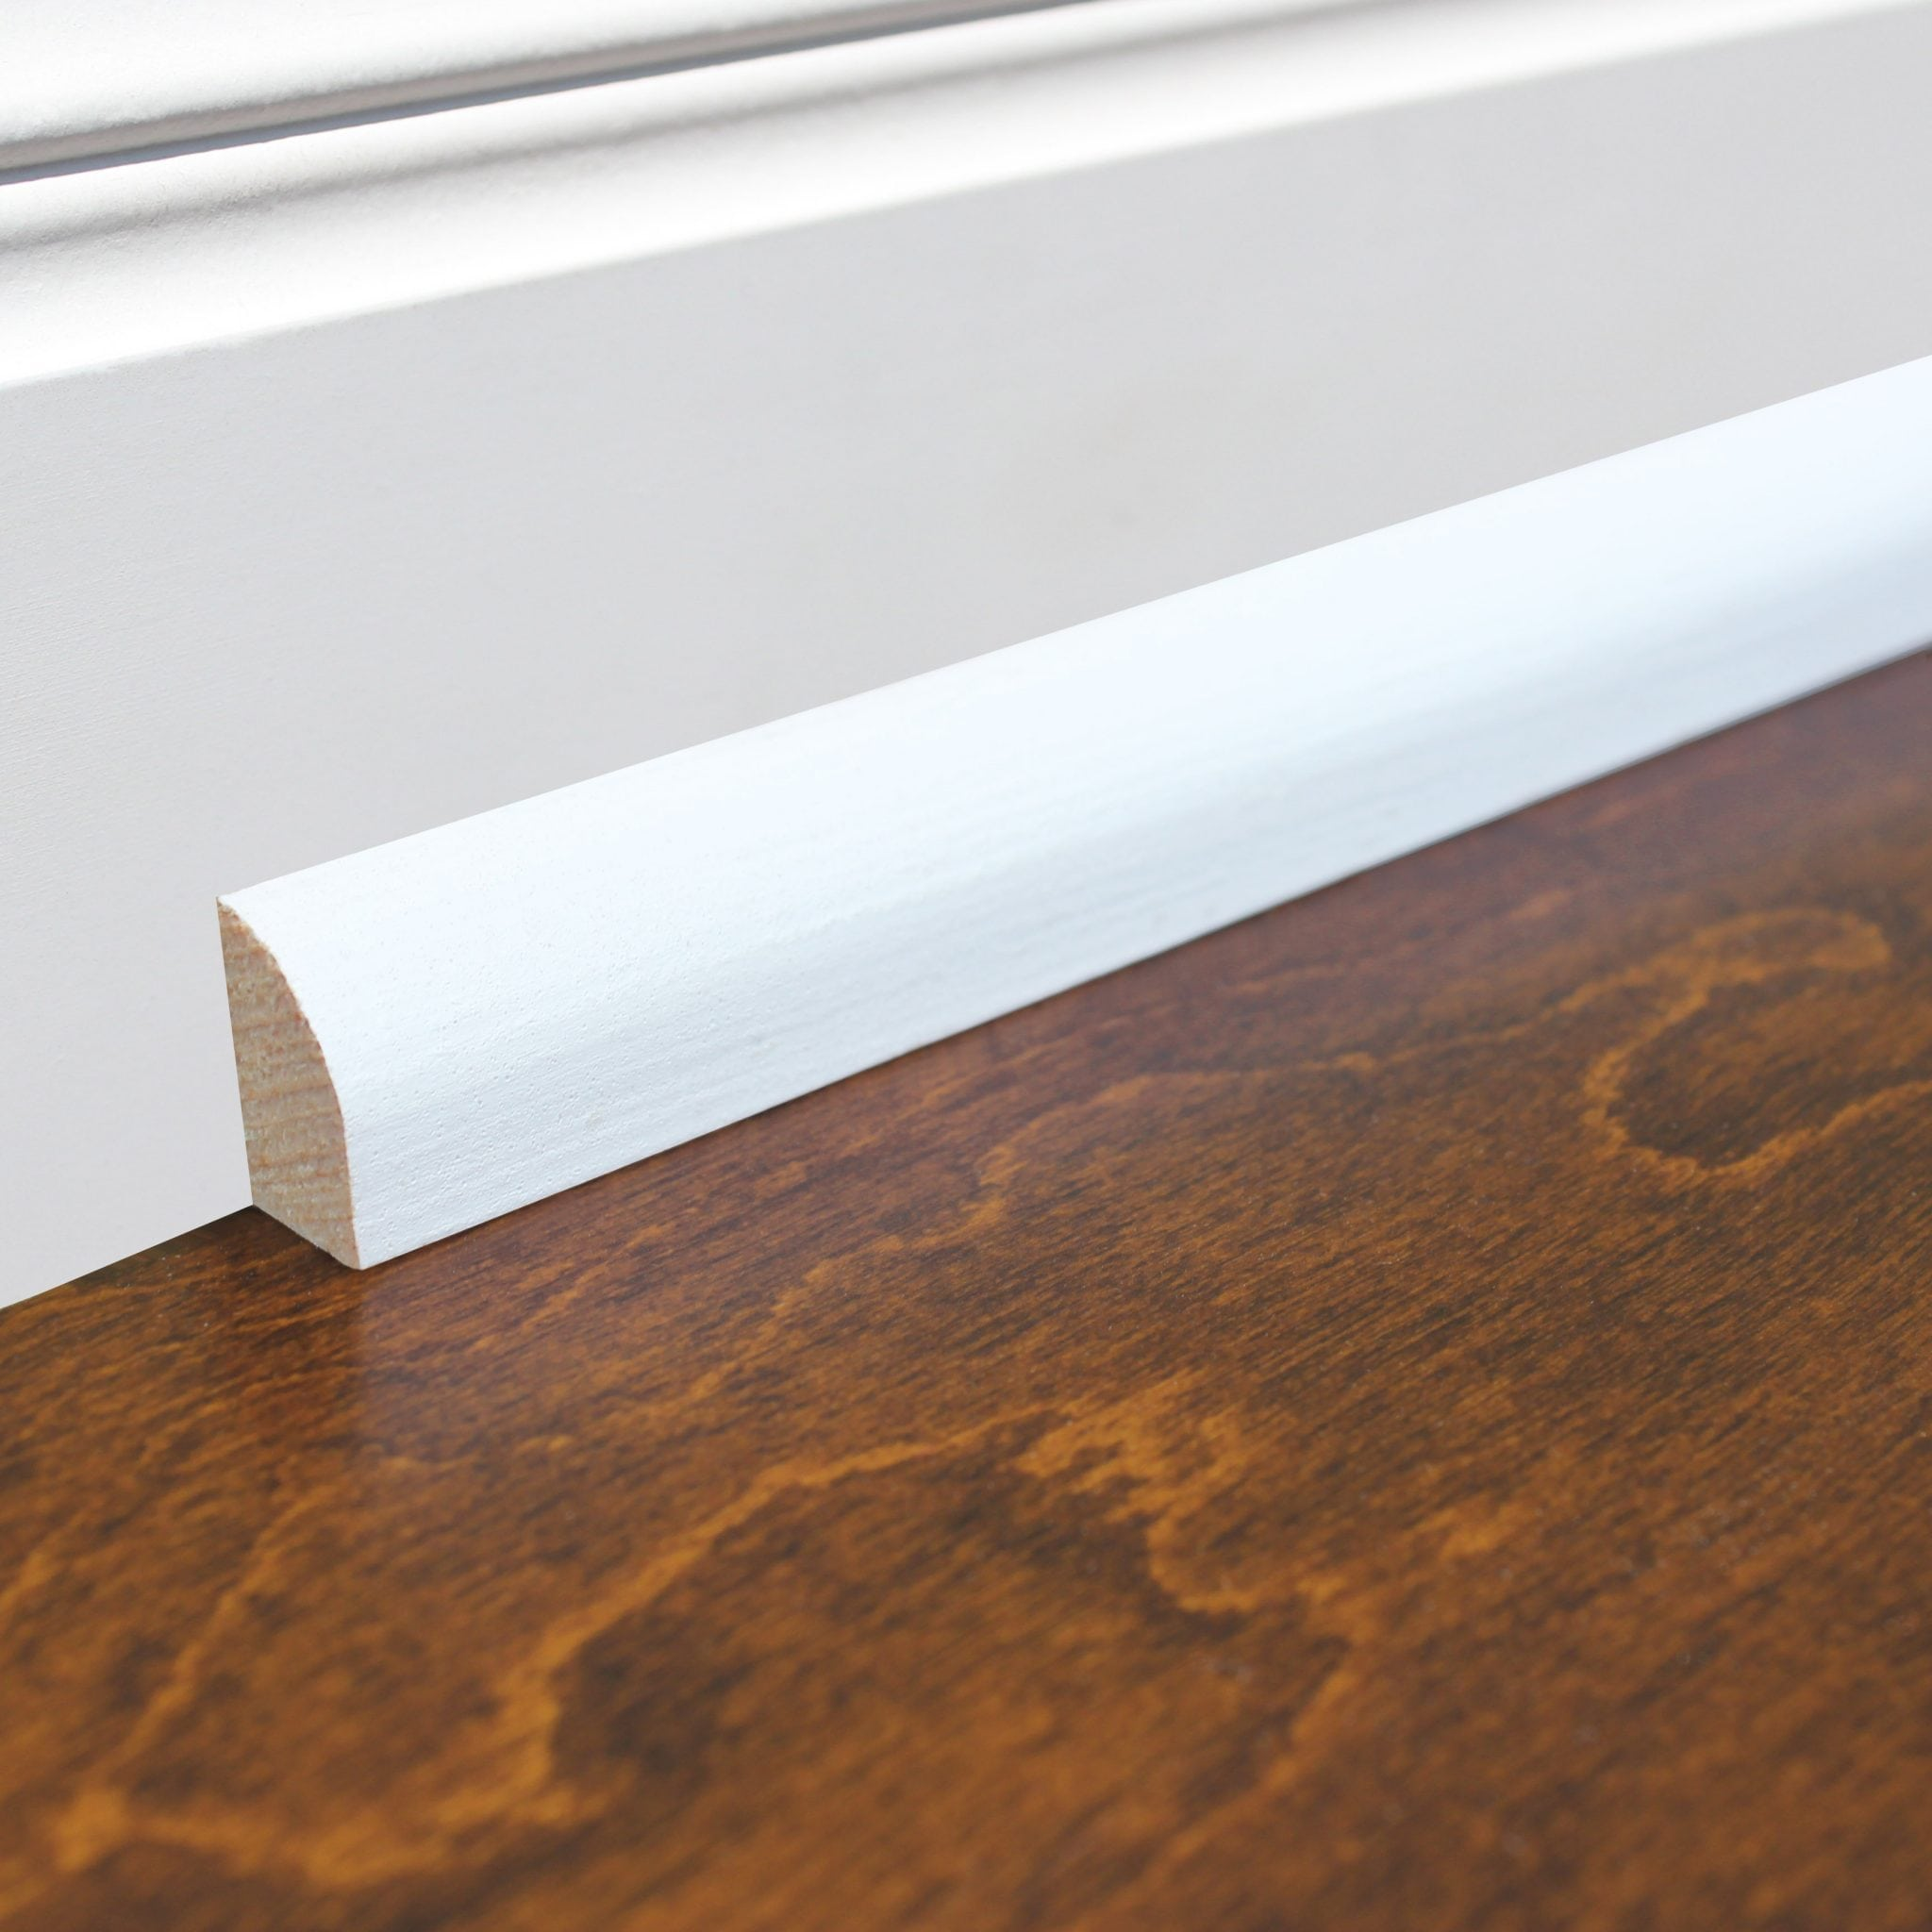 water molding to baseboards floor ehow get how stains out of